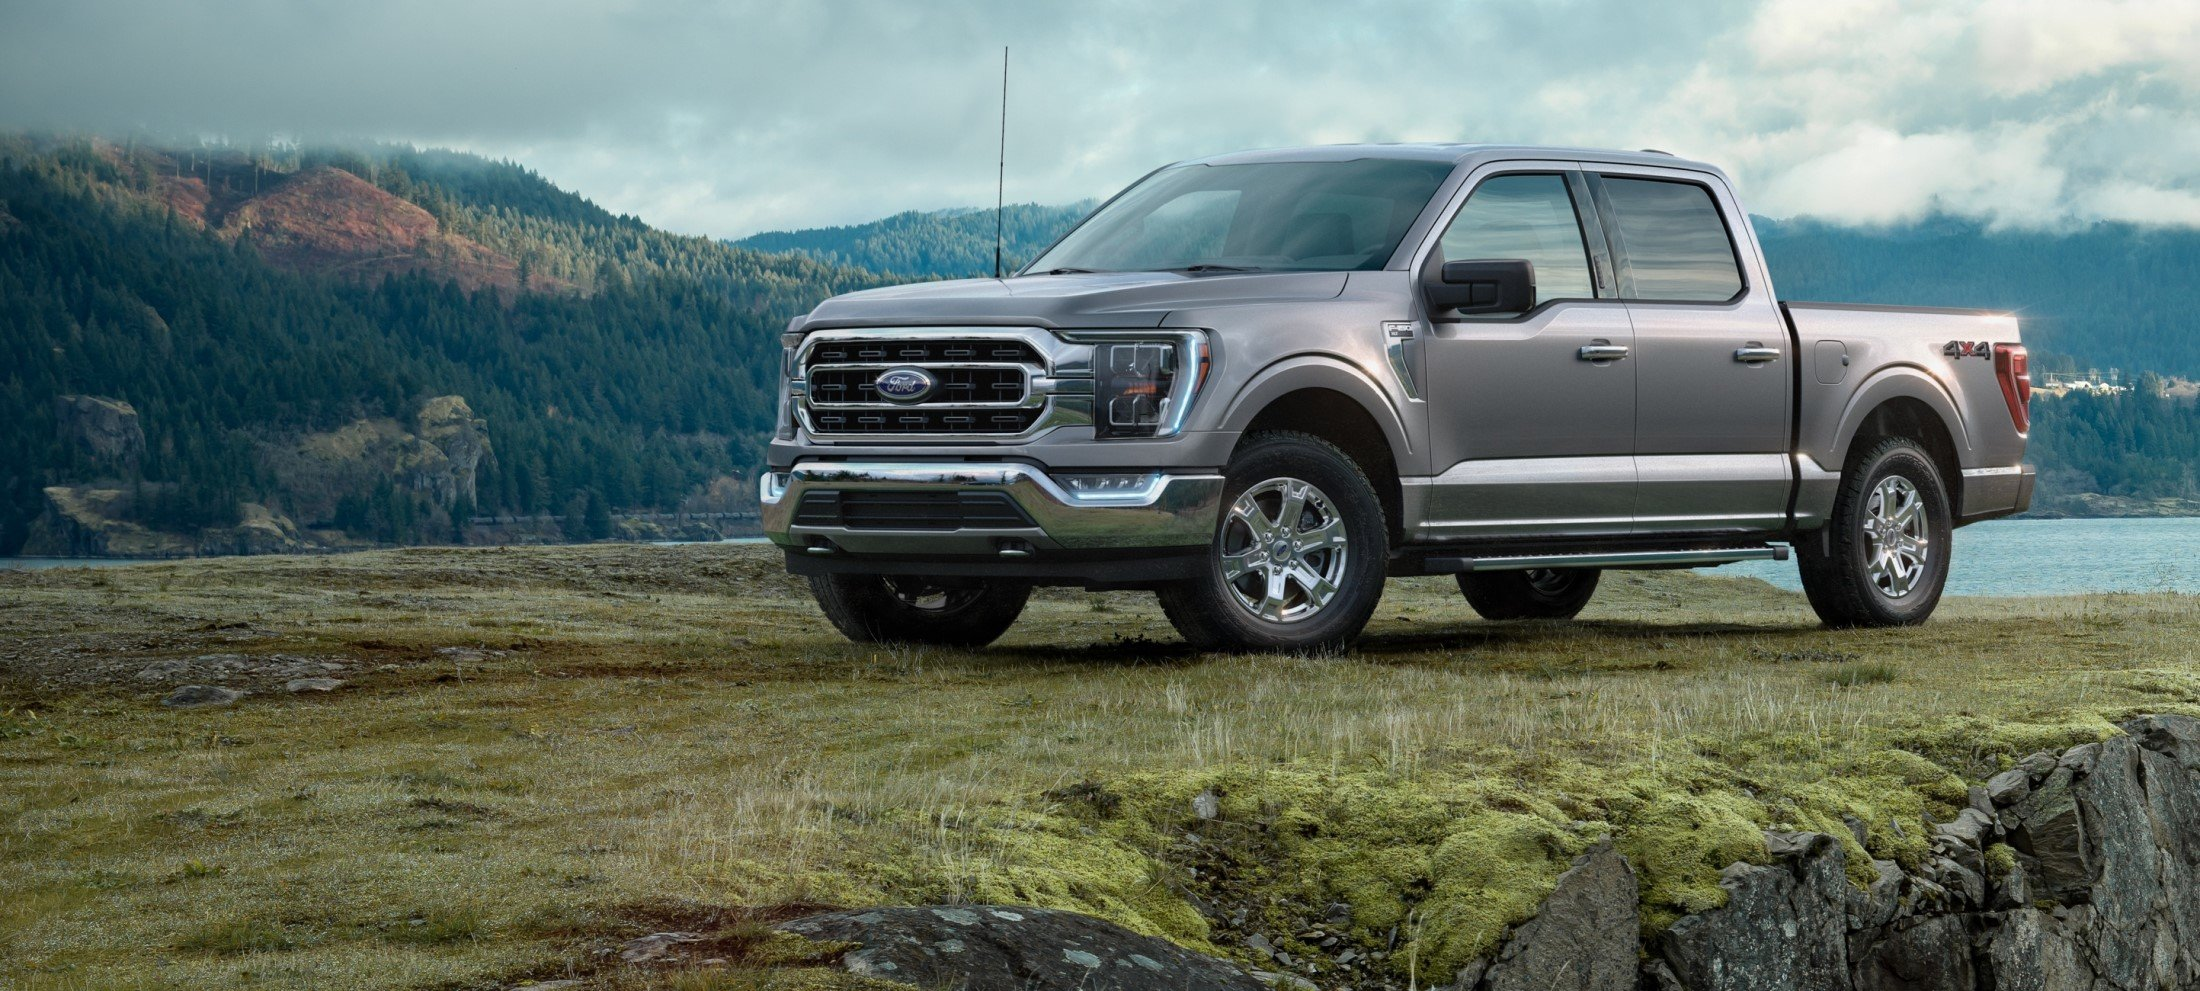 Ford F 150 Lease Deals Incentives Marysville Oh